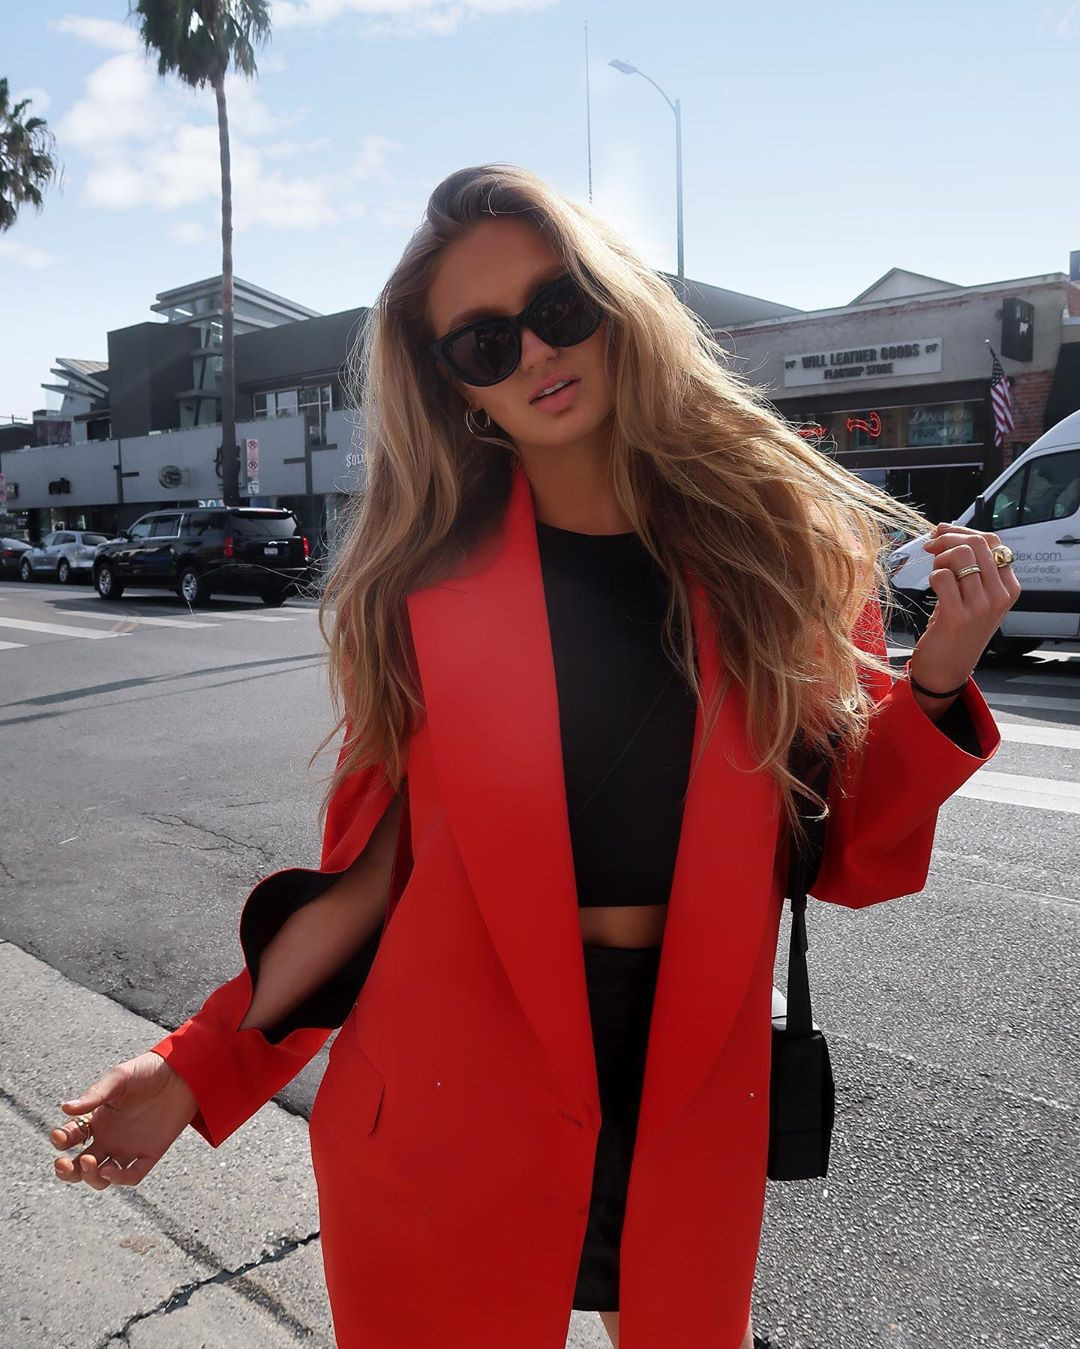 Romee Strijd blazer colour outfit, you must try, model photography, blond hairs